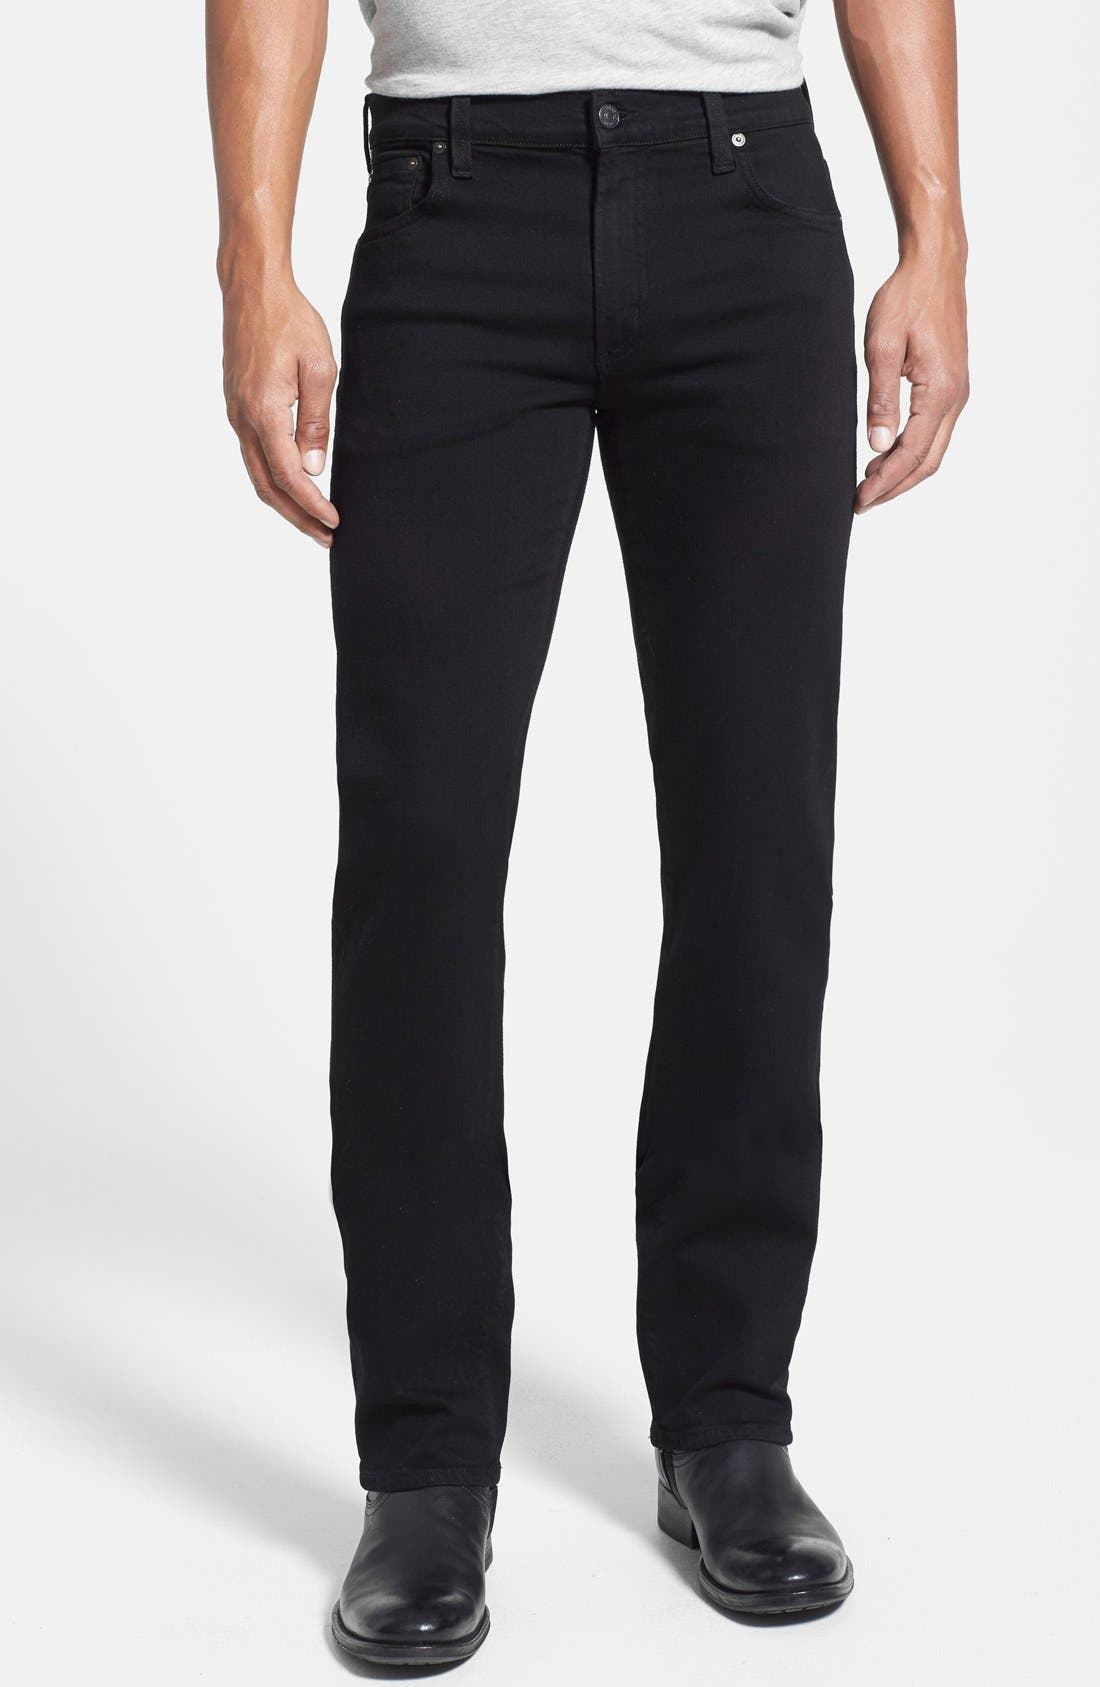 Main Image - Citizens of Humanity 'Mod Comfort' Slim Fit Jeans (Dog Town)